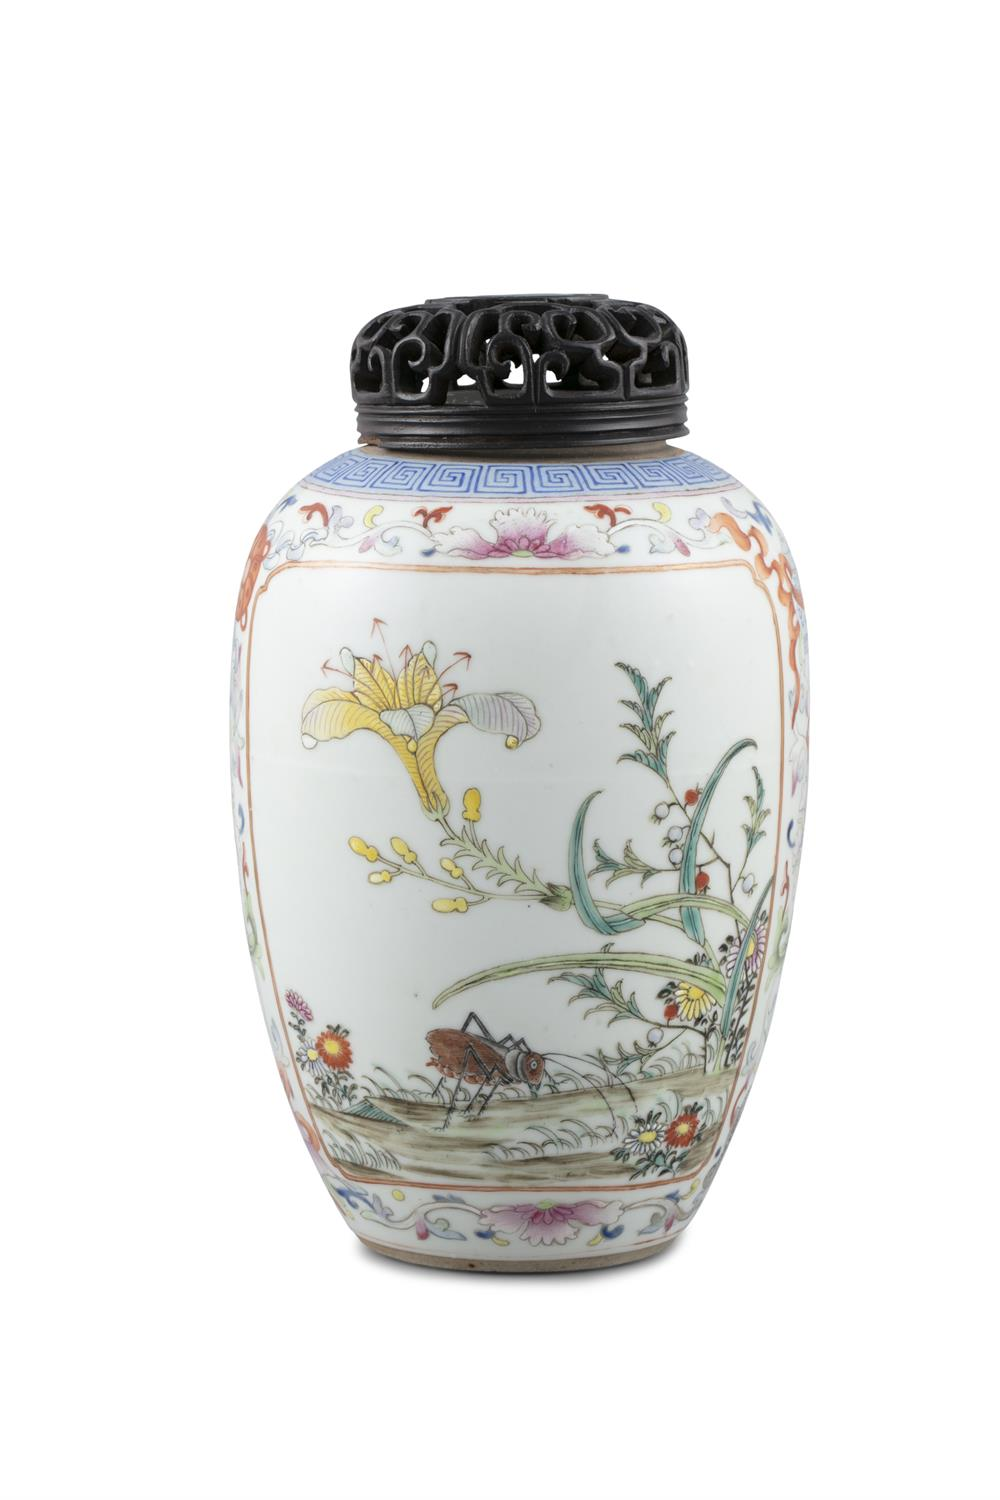 A FAMILLE ROSE PALETTE EGG SHAPED PORCELAIN VASE China, 19th to 20th century Richly adorned in the - Image 6 of 15